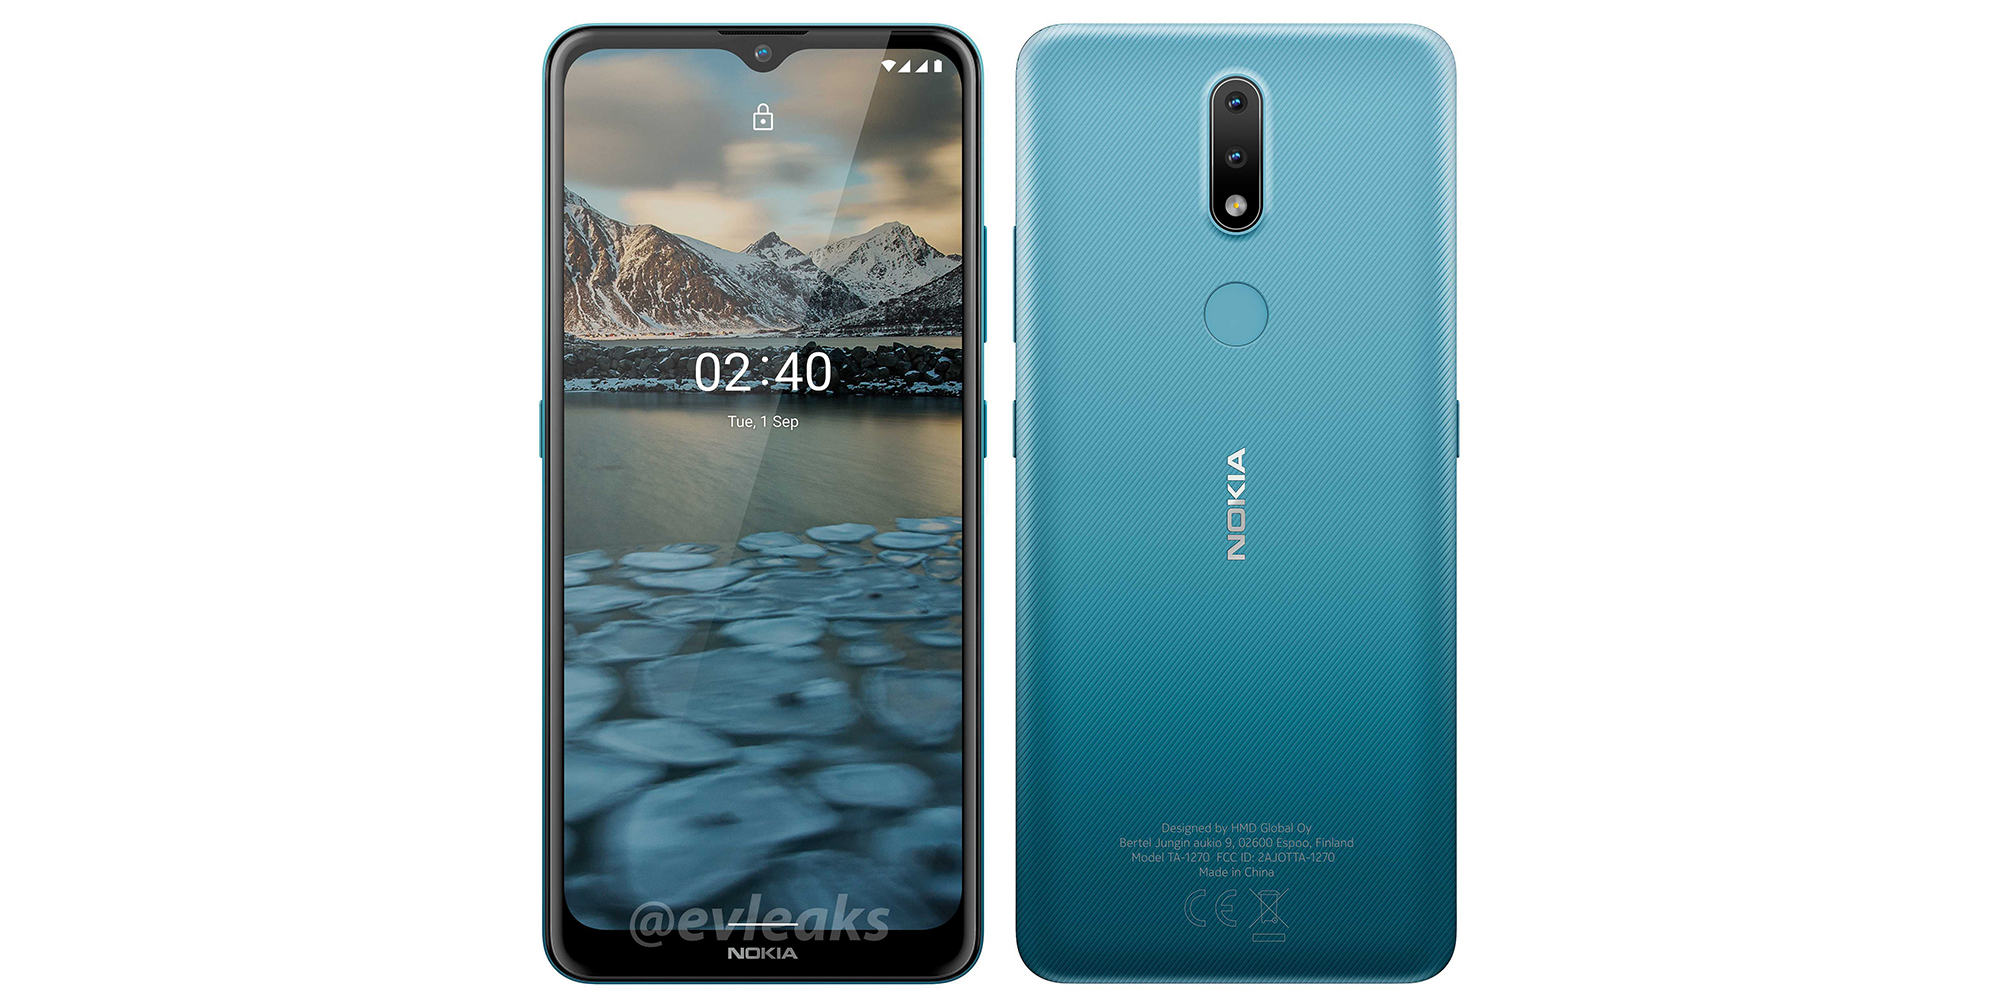 Nokia 2 4 Renders Showcase Firms Next Affordable Phone 9to5google